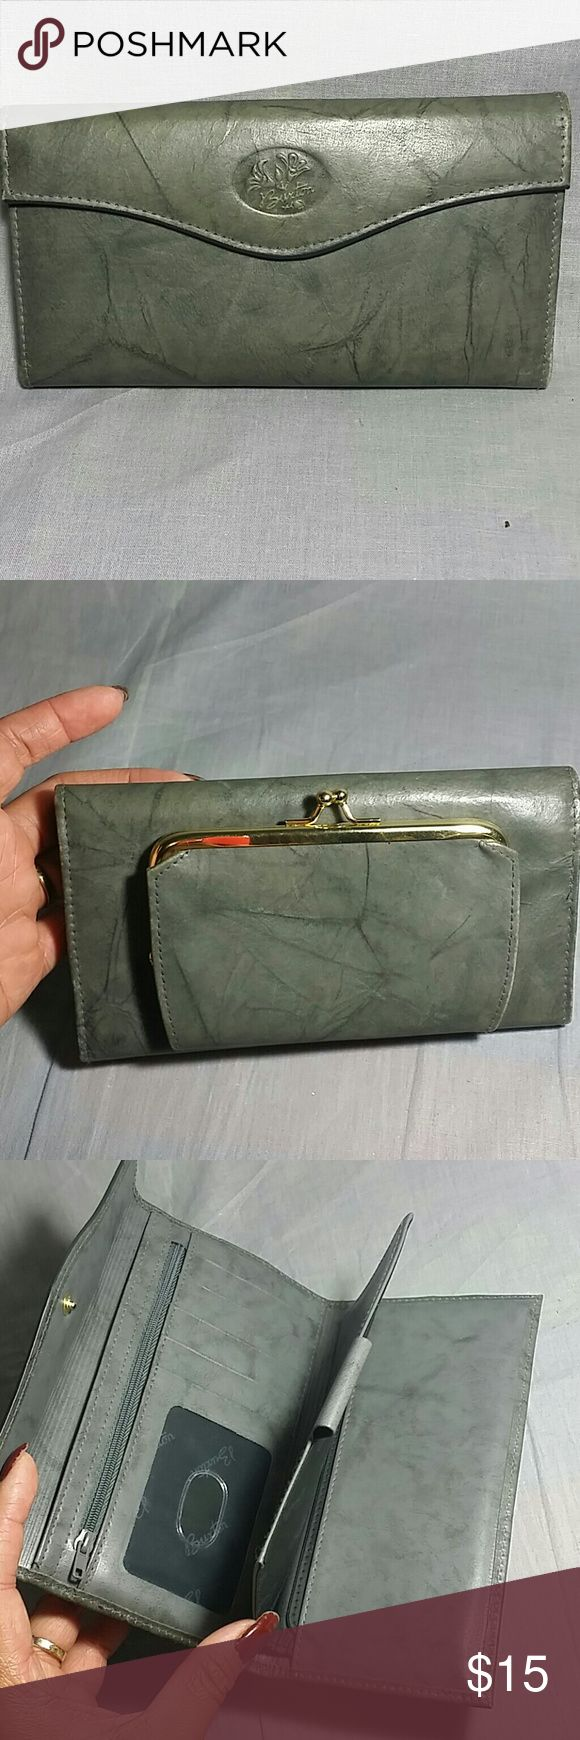 """Women's Buxton wallet Gray Leather Item is in a good condition measurements height 4"""" Length 7"""" lots of compartments. Buxton  Bags Wallets"""